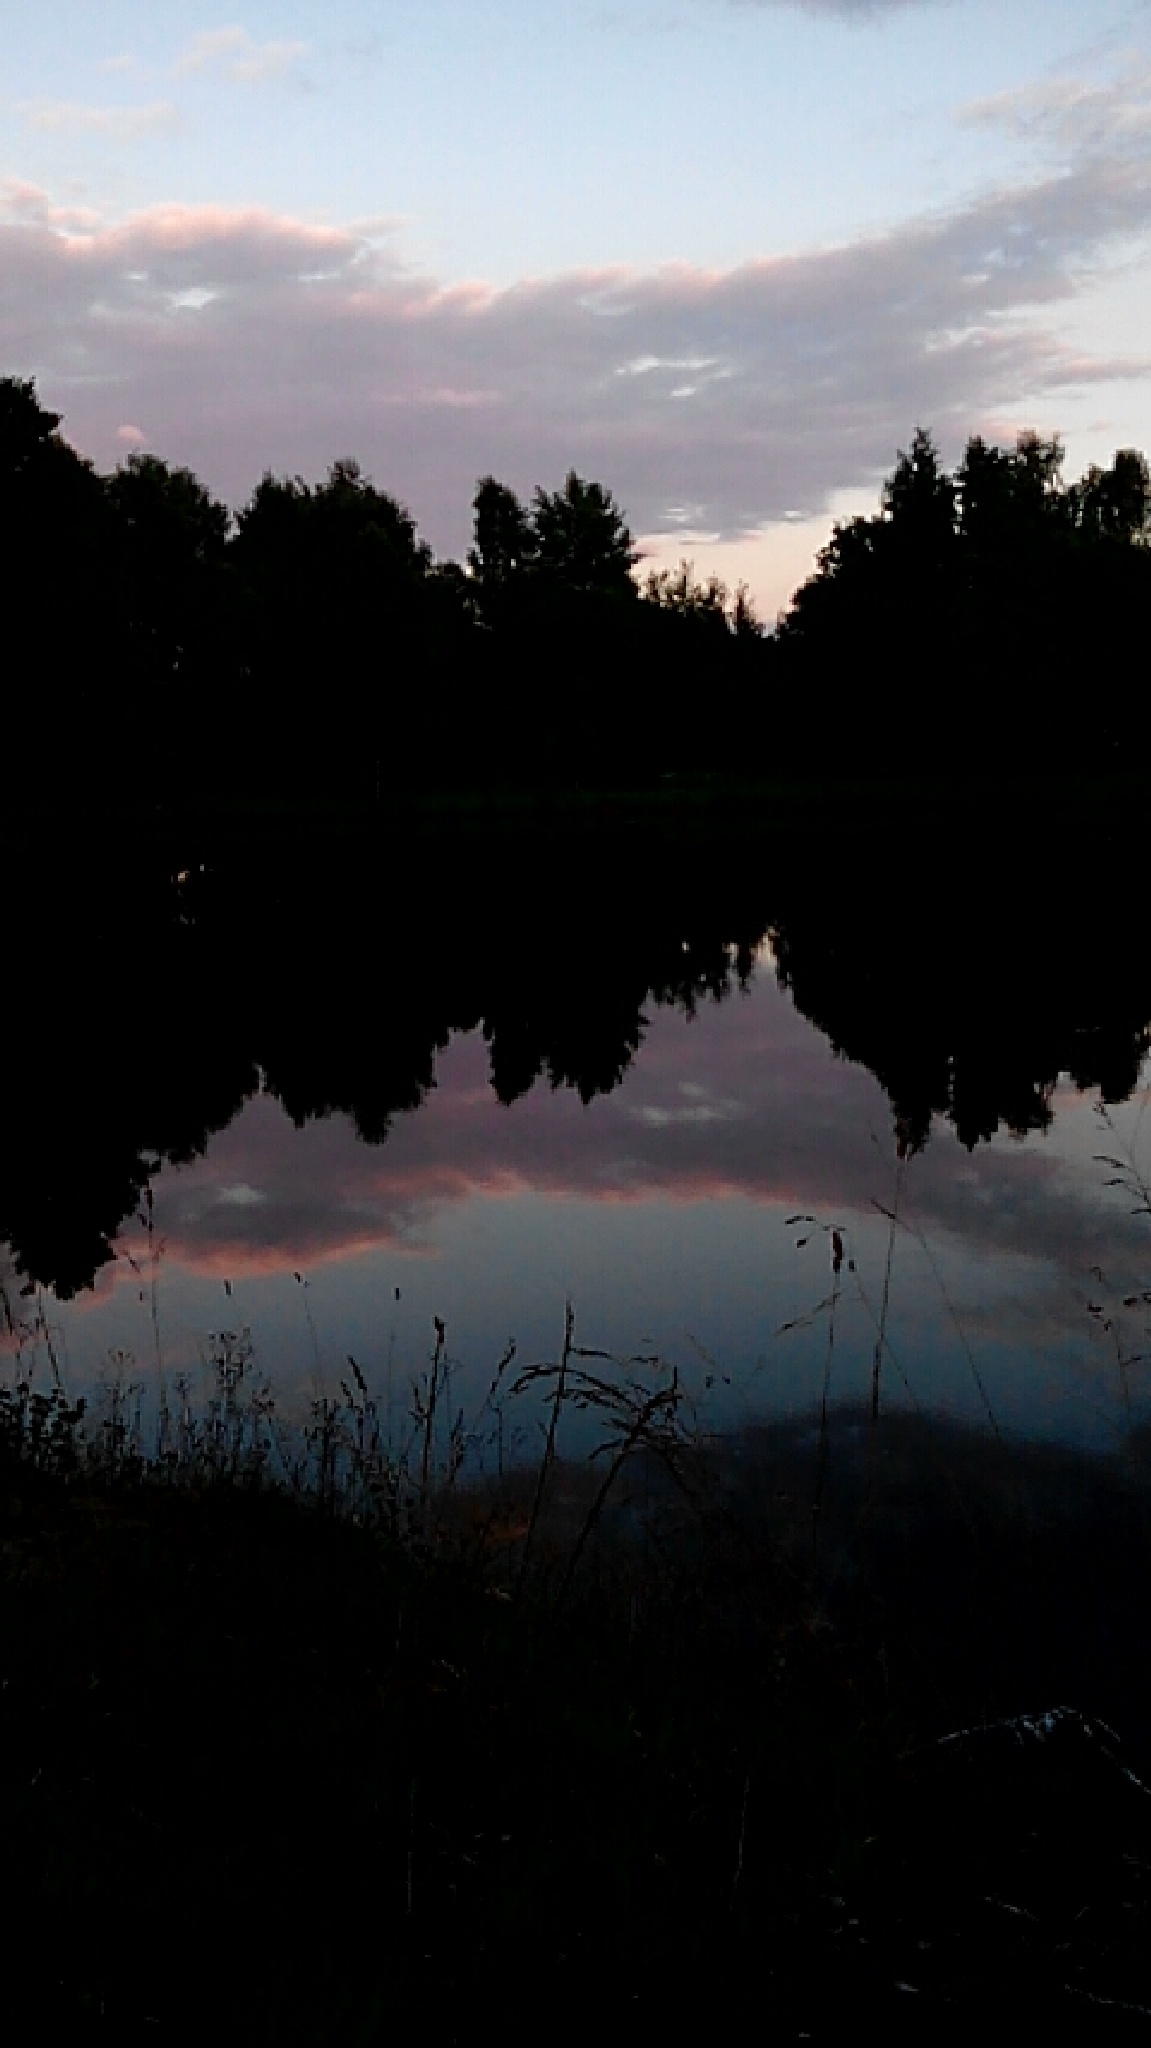 evening at the pond by Marie Mada Novotna